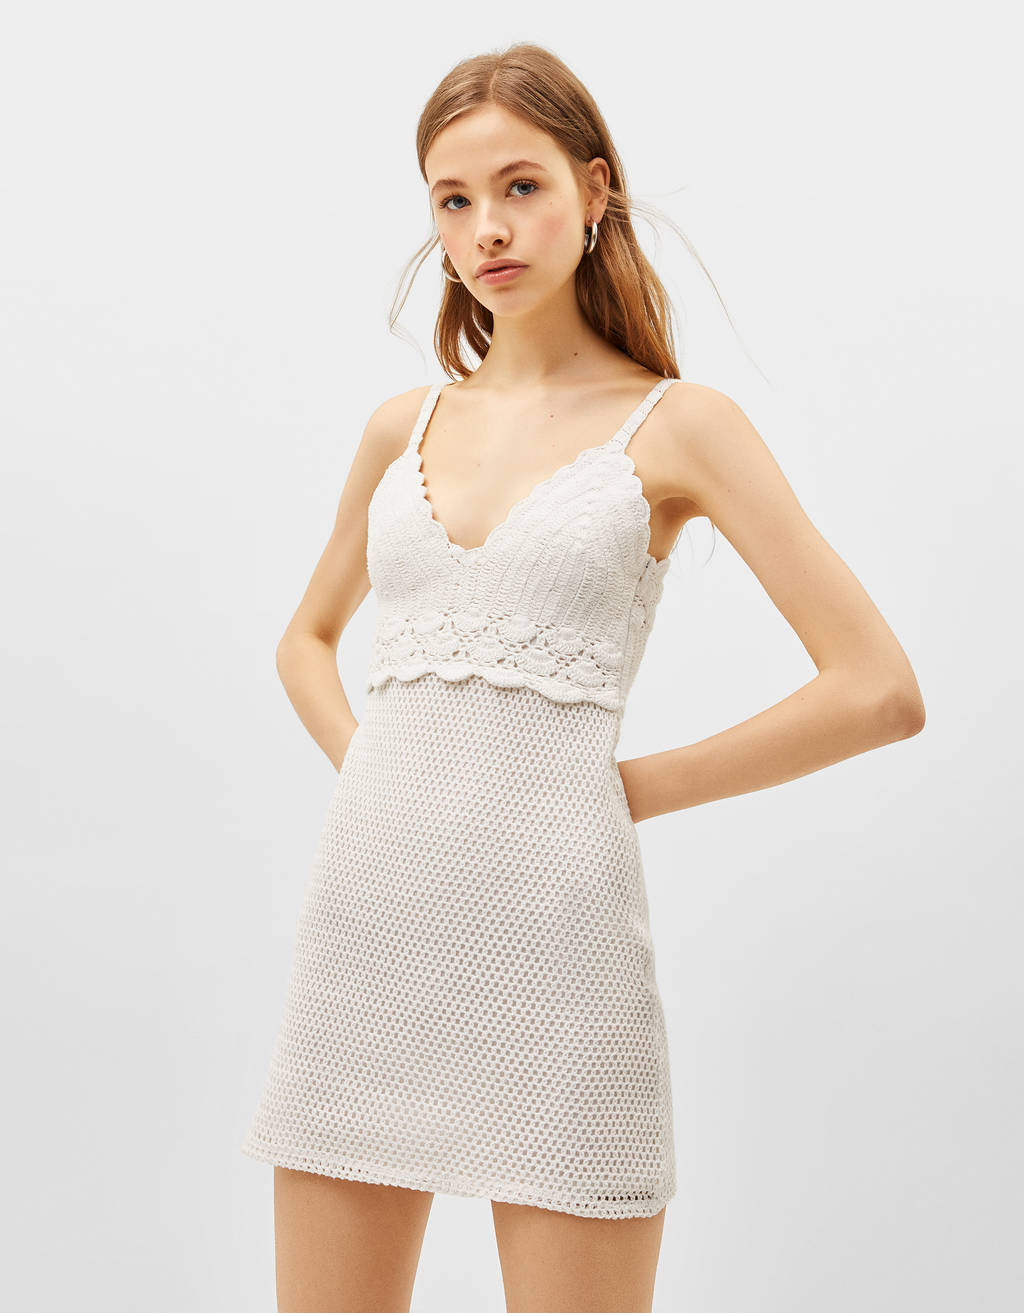 Crochet dress with straps